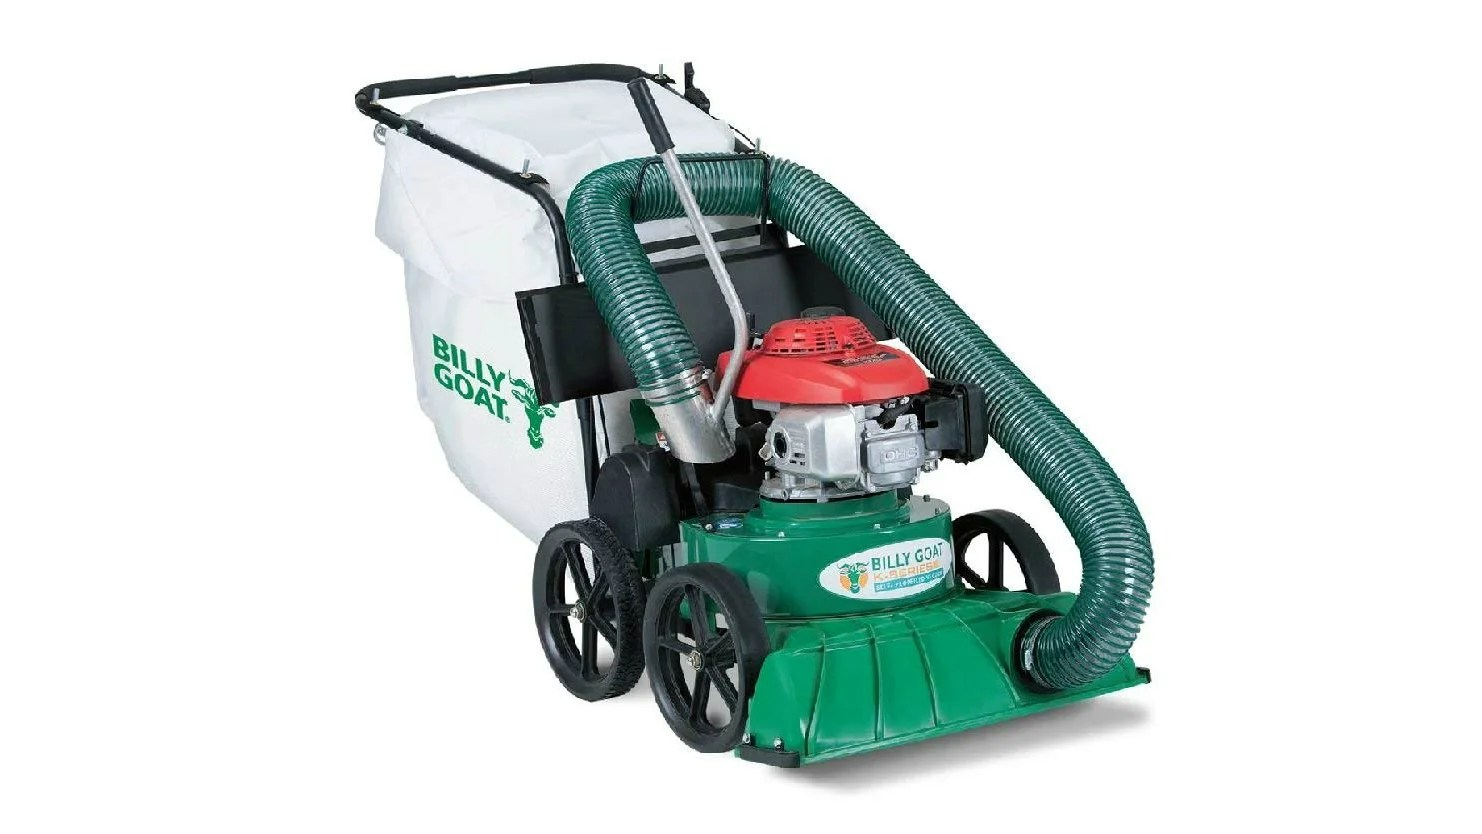 Best Garden Blower And Vacuum